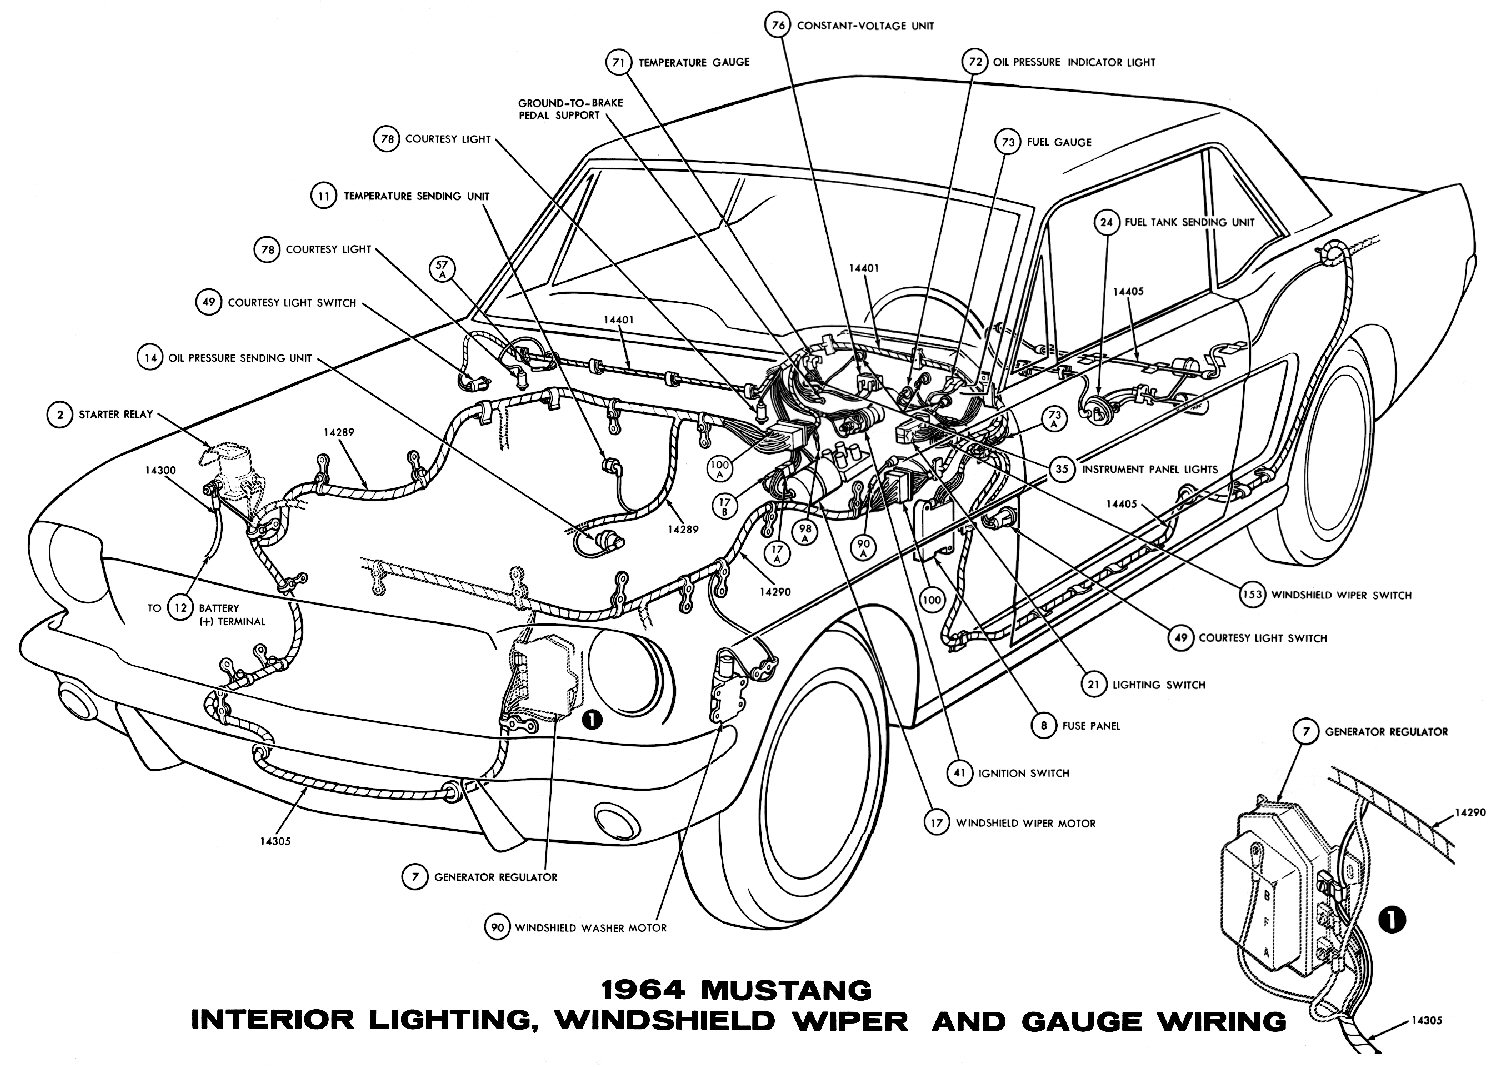 1964 Mustang Interior Lights, Windshield Wiper and Gauges Pictorial or  Schematic